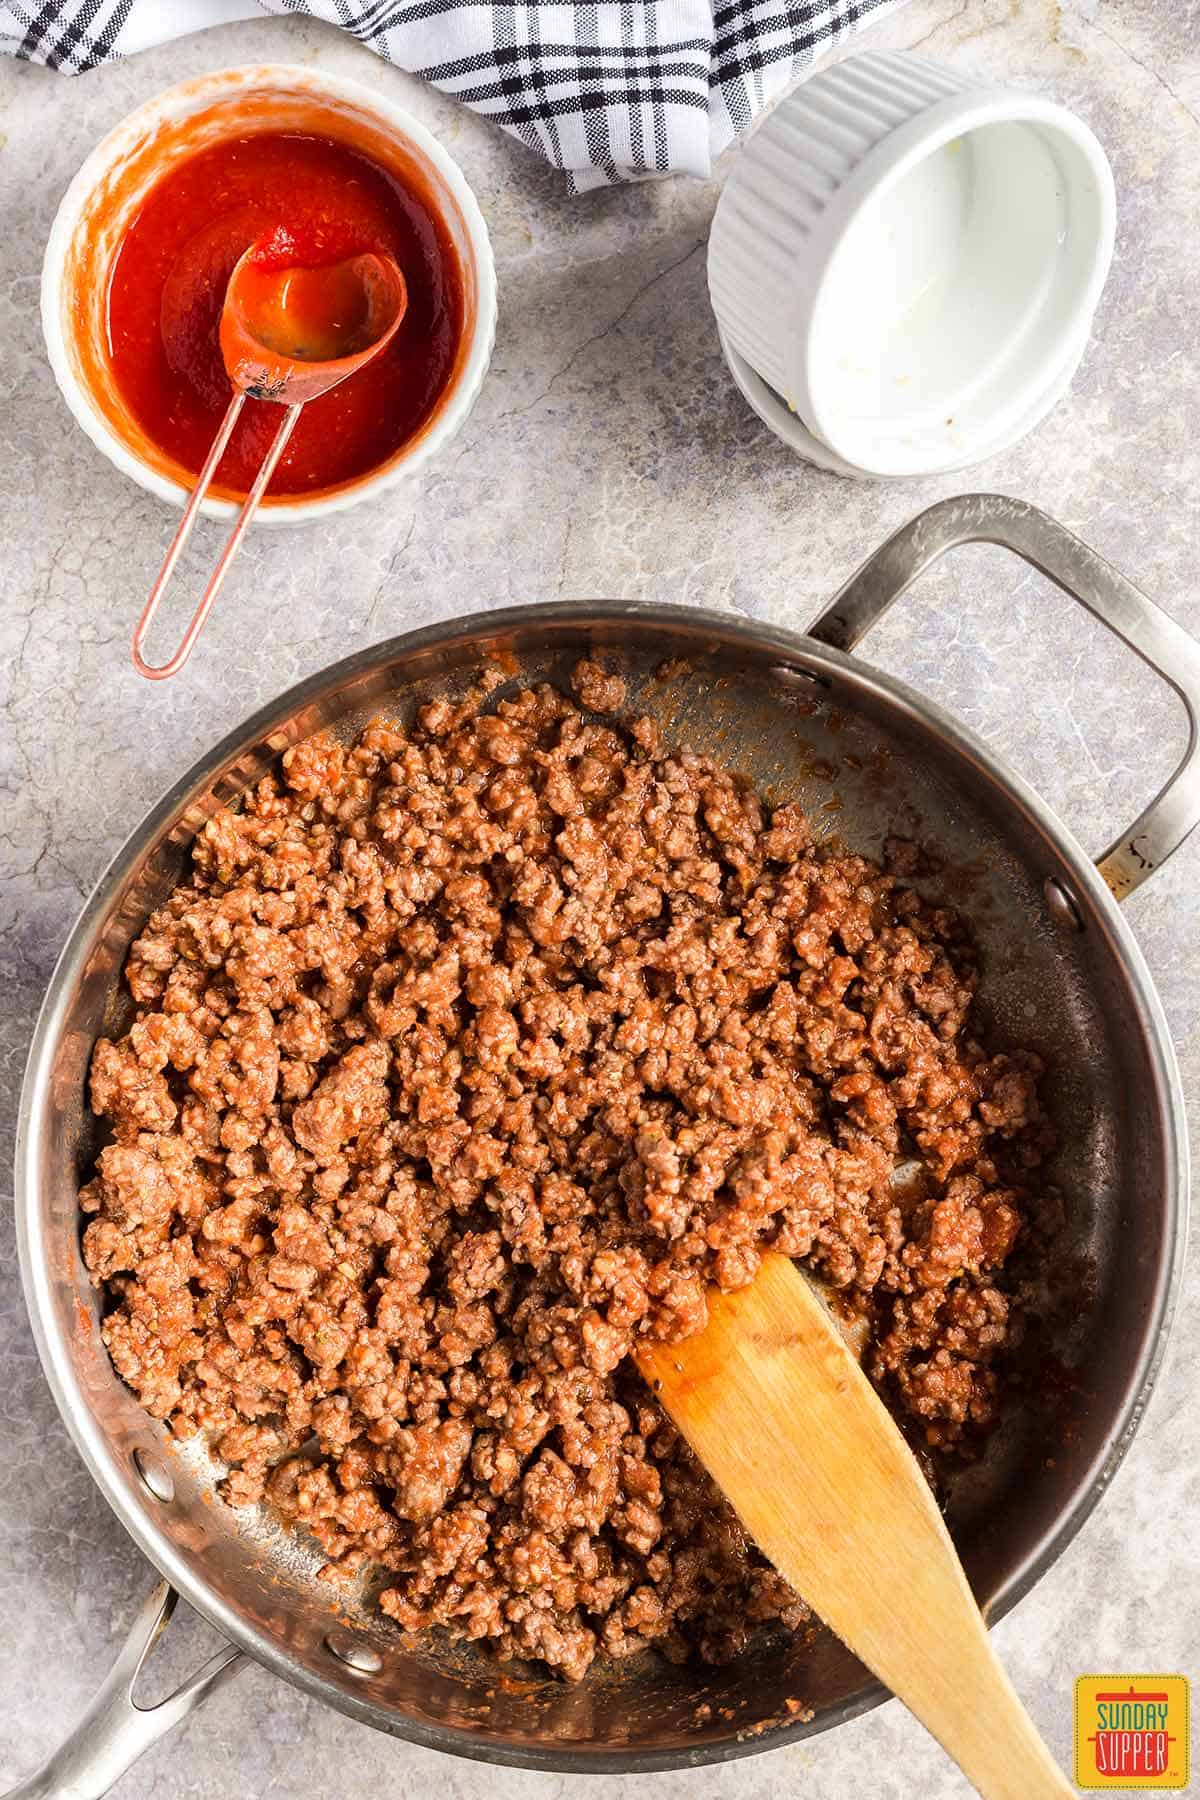 Ground beef mixed with tomato sauce and seasoning in a skillet